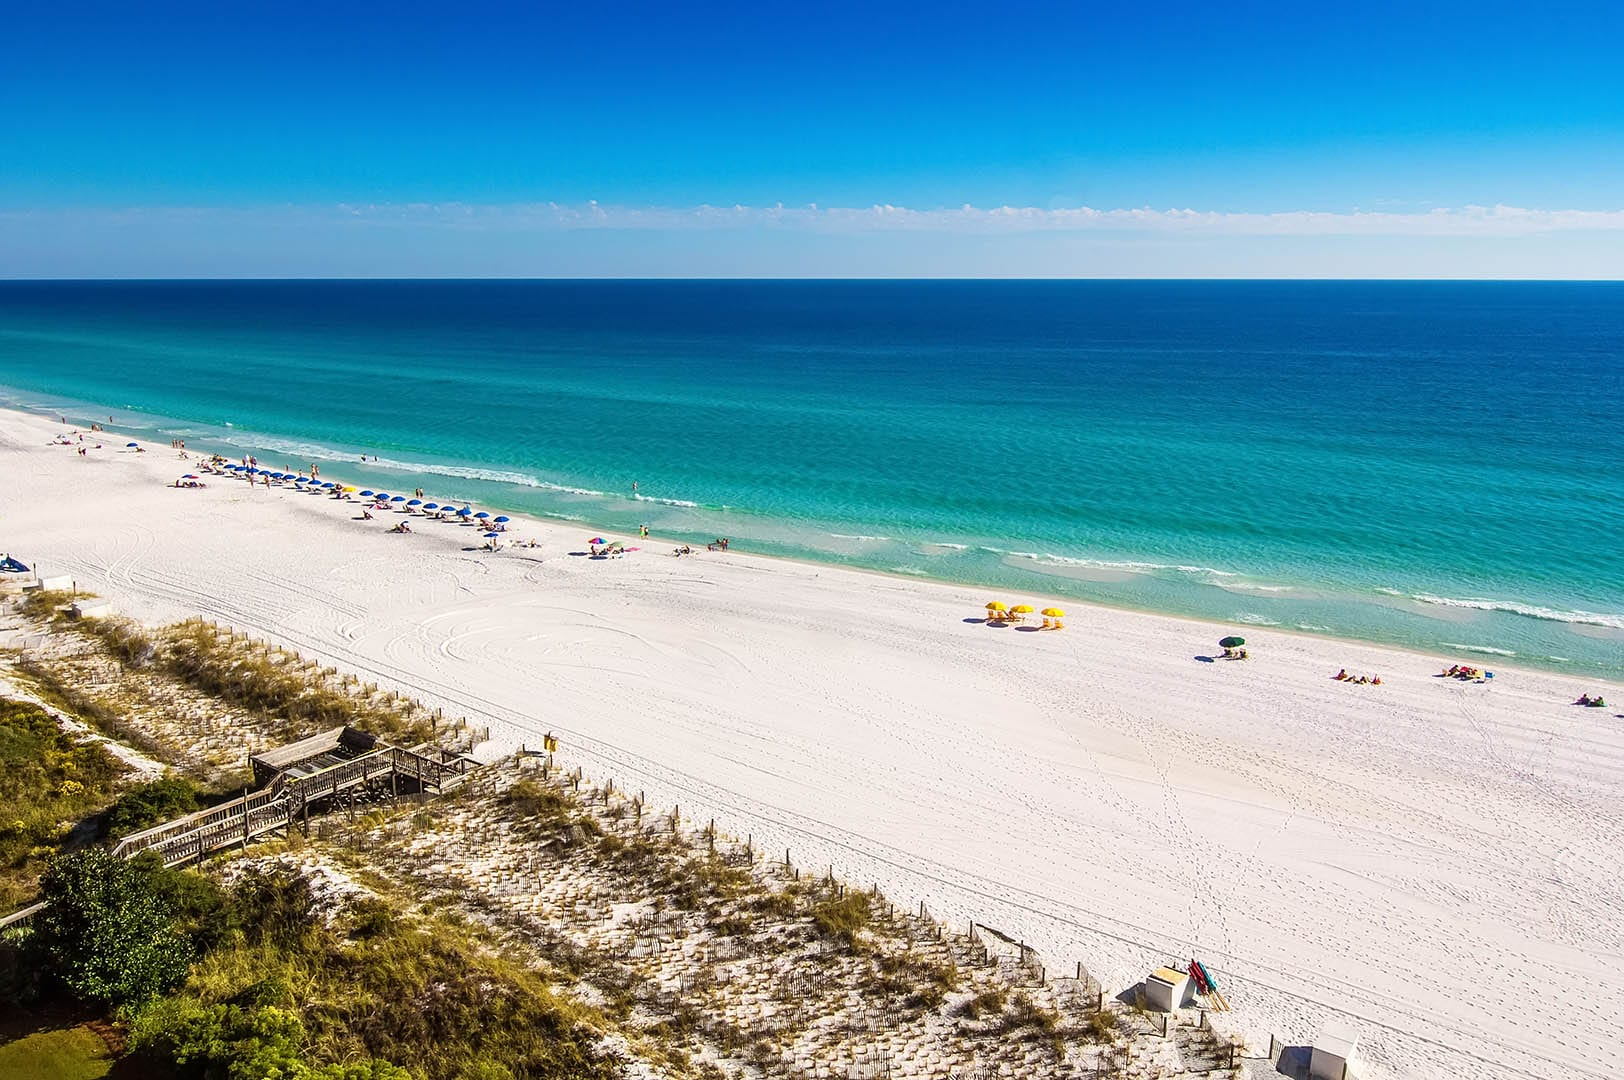 Destin Florida Attractions - 10 SPECTACULAR things to do ...  |Destin Florida Attractions